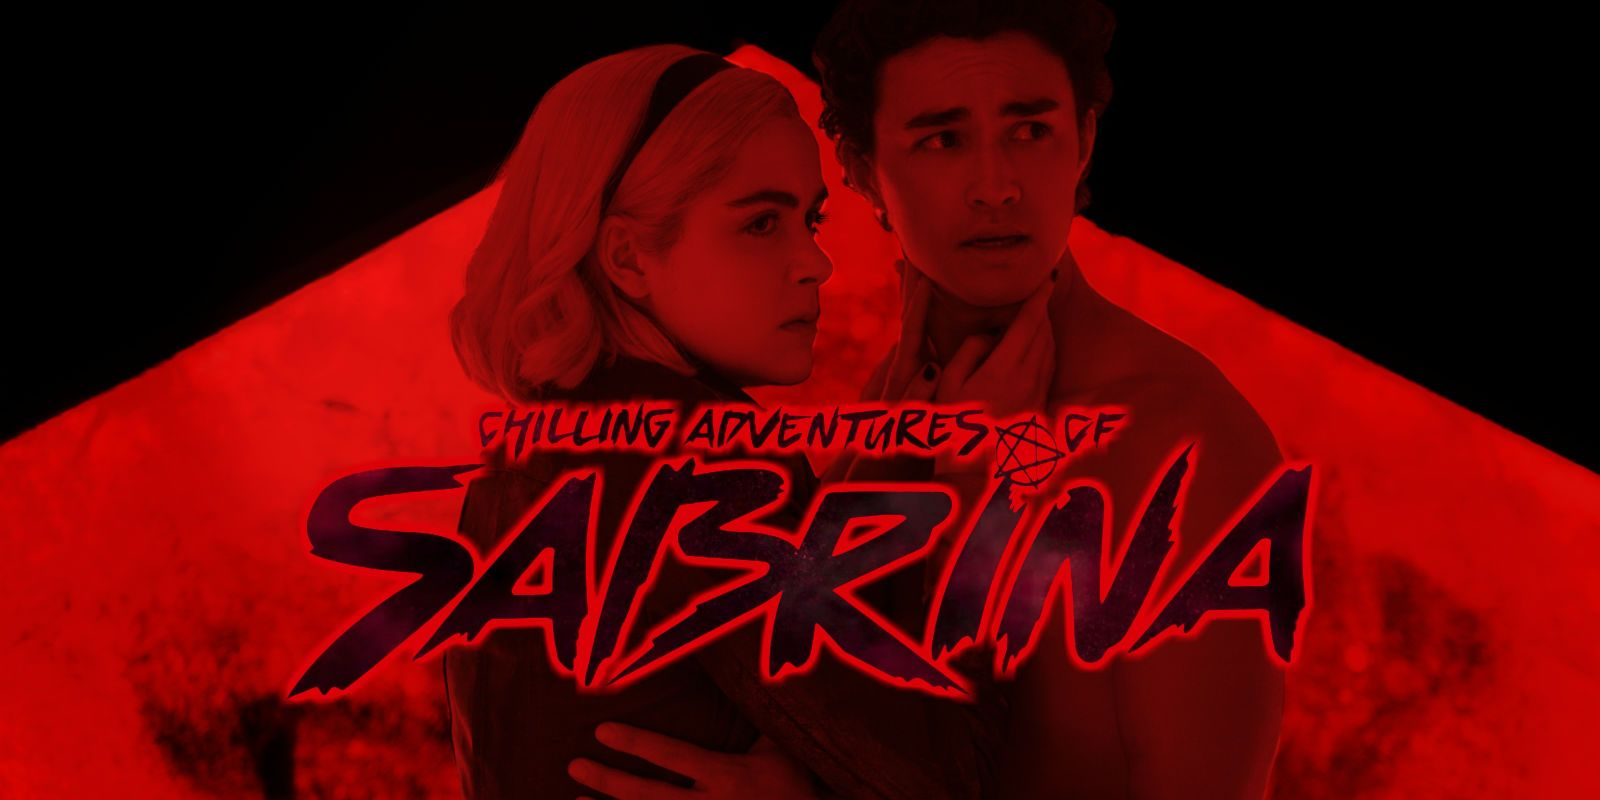 Chilling Adventures of Sabrina Season 4: Release Date & Story Details